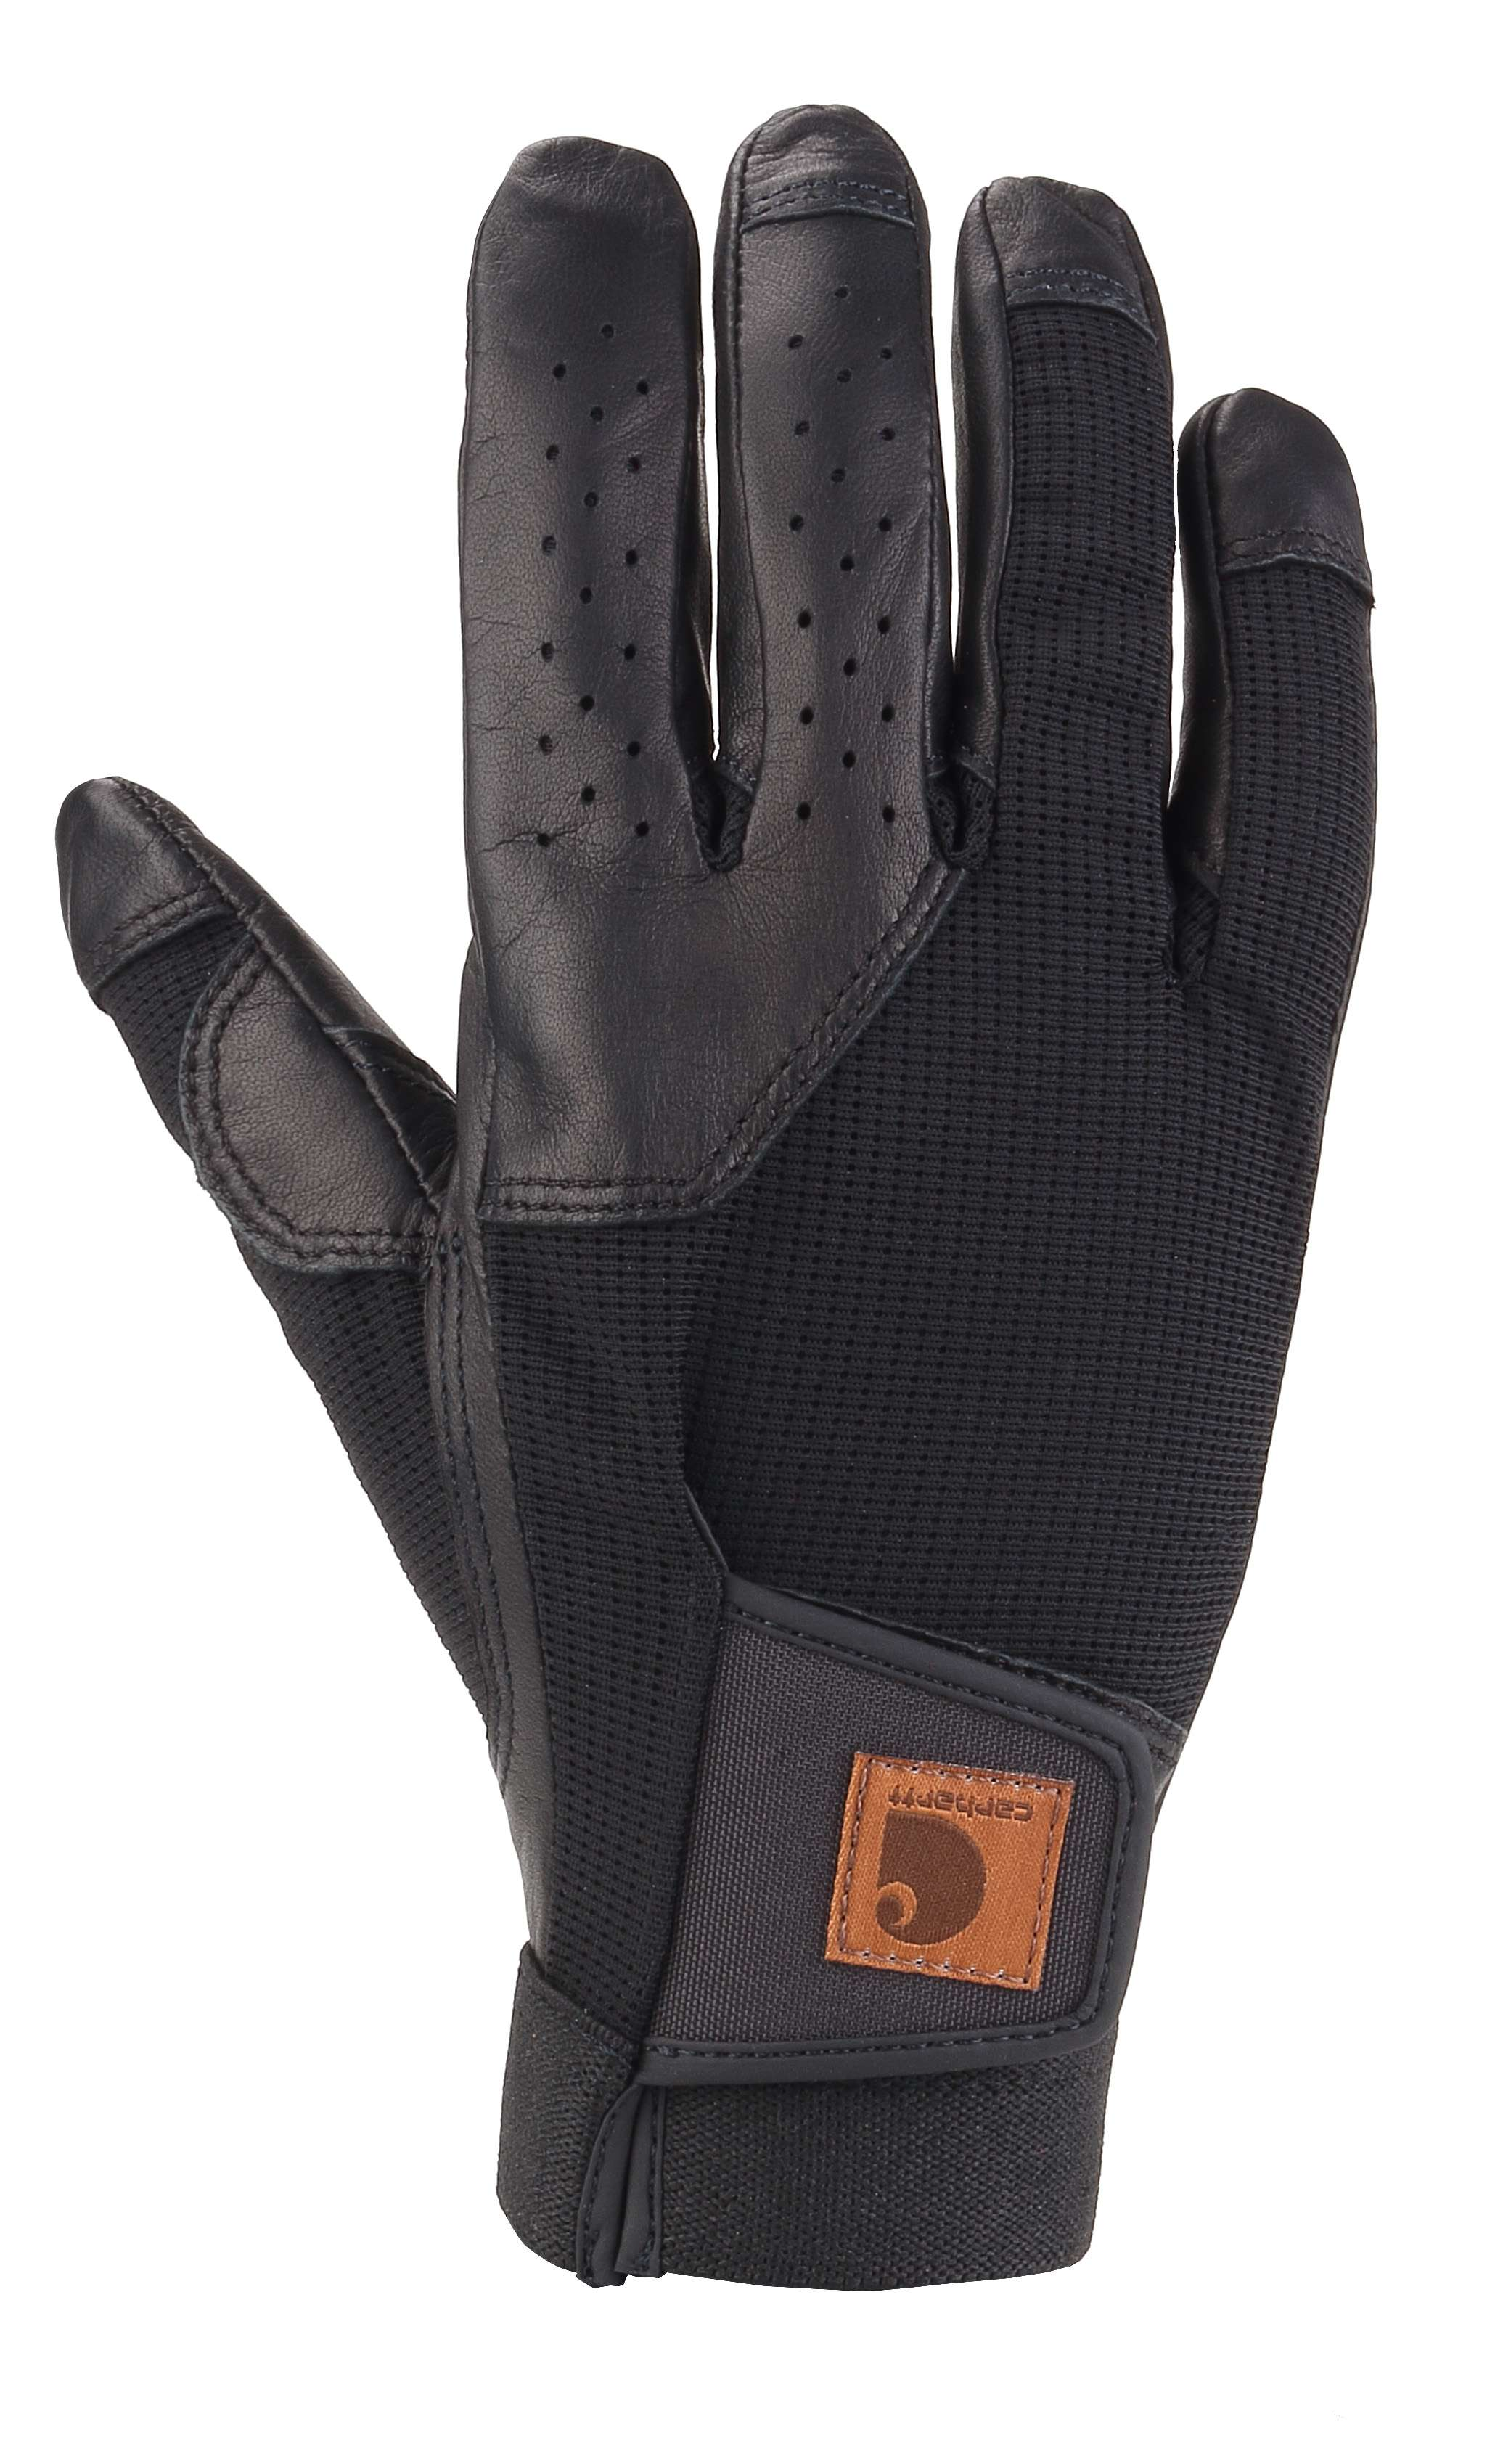 Carhartt Sight Line High Dexterity Glove